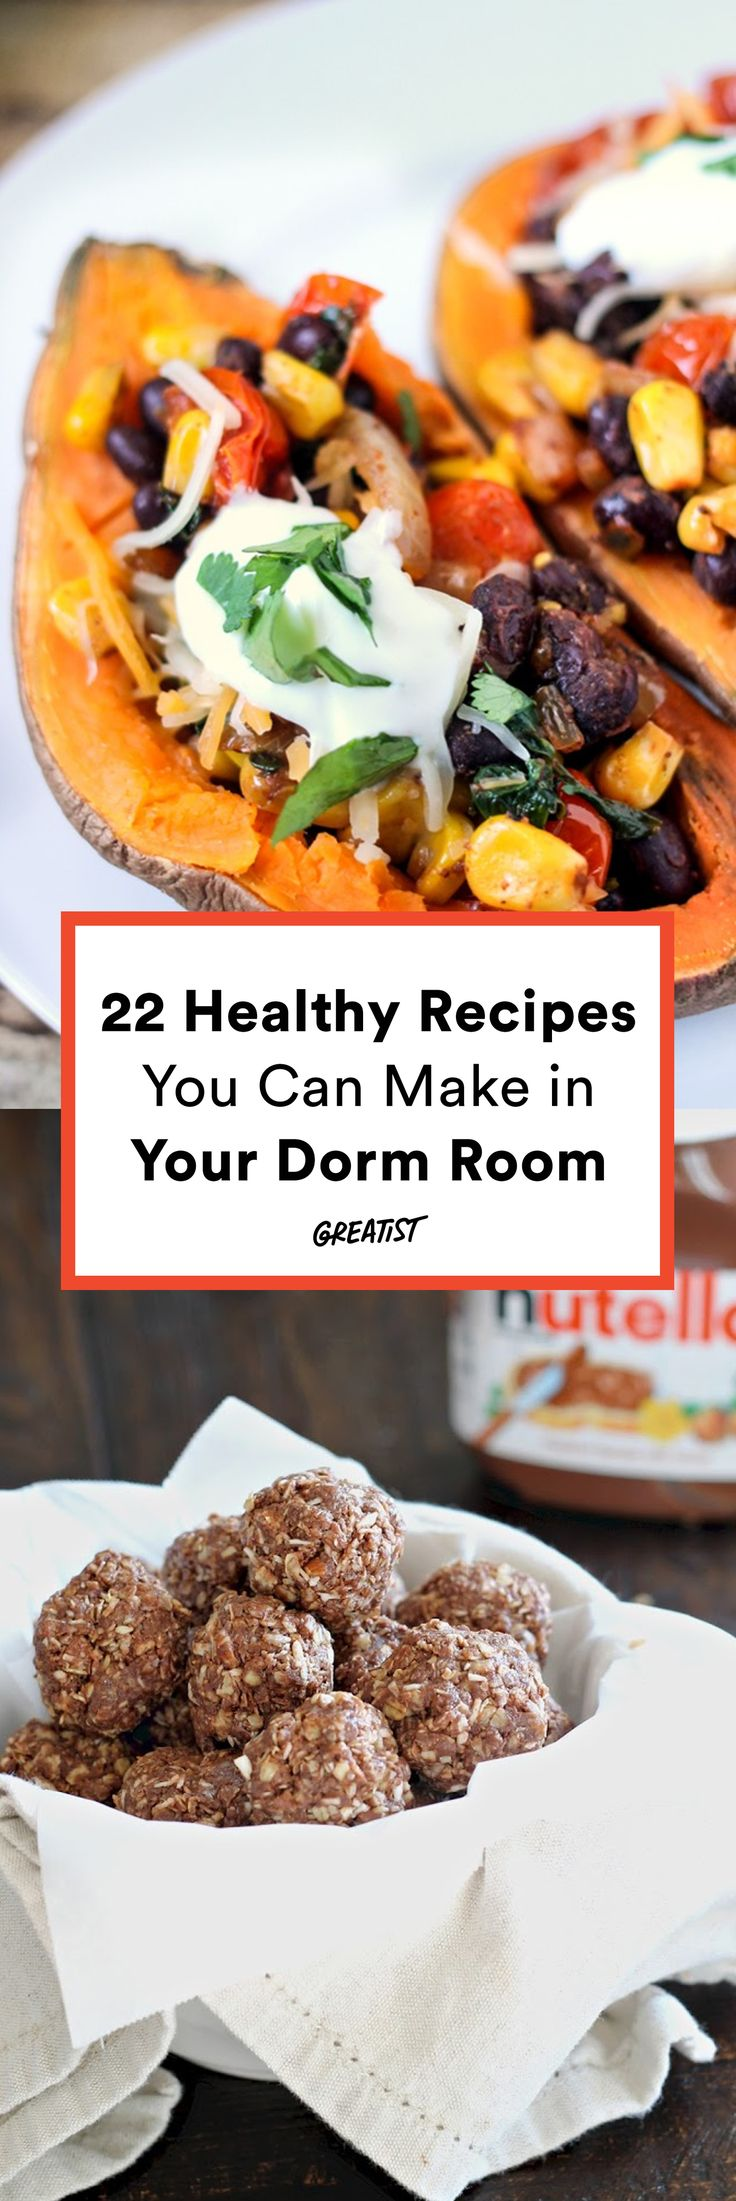 Ditch the ramen once and for all. #healthy #recipes #college http://greatist.com/eat/healthy-dorm-room-recipes